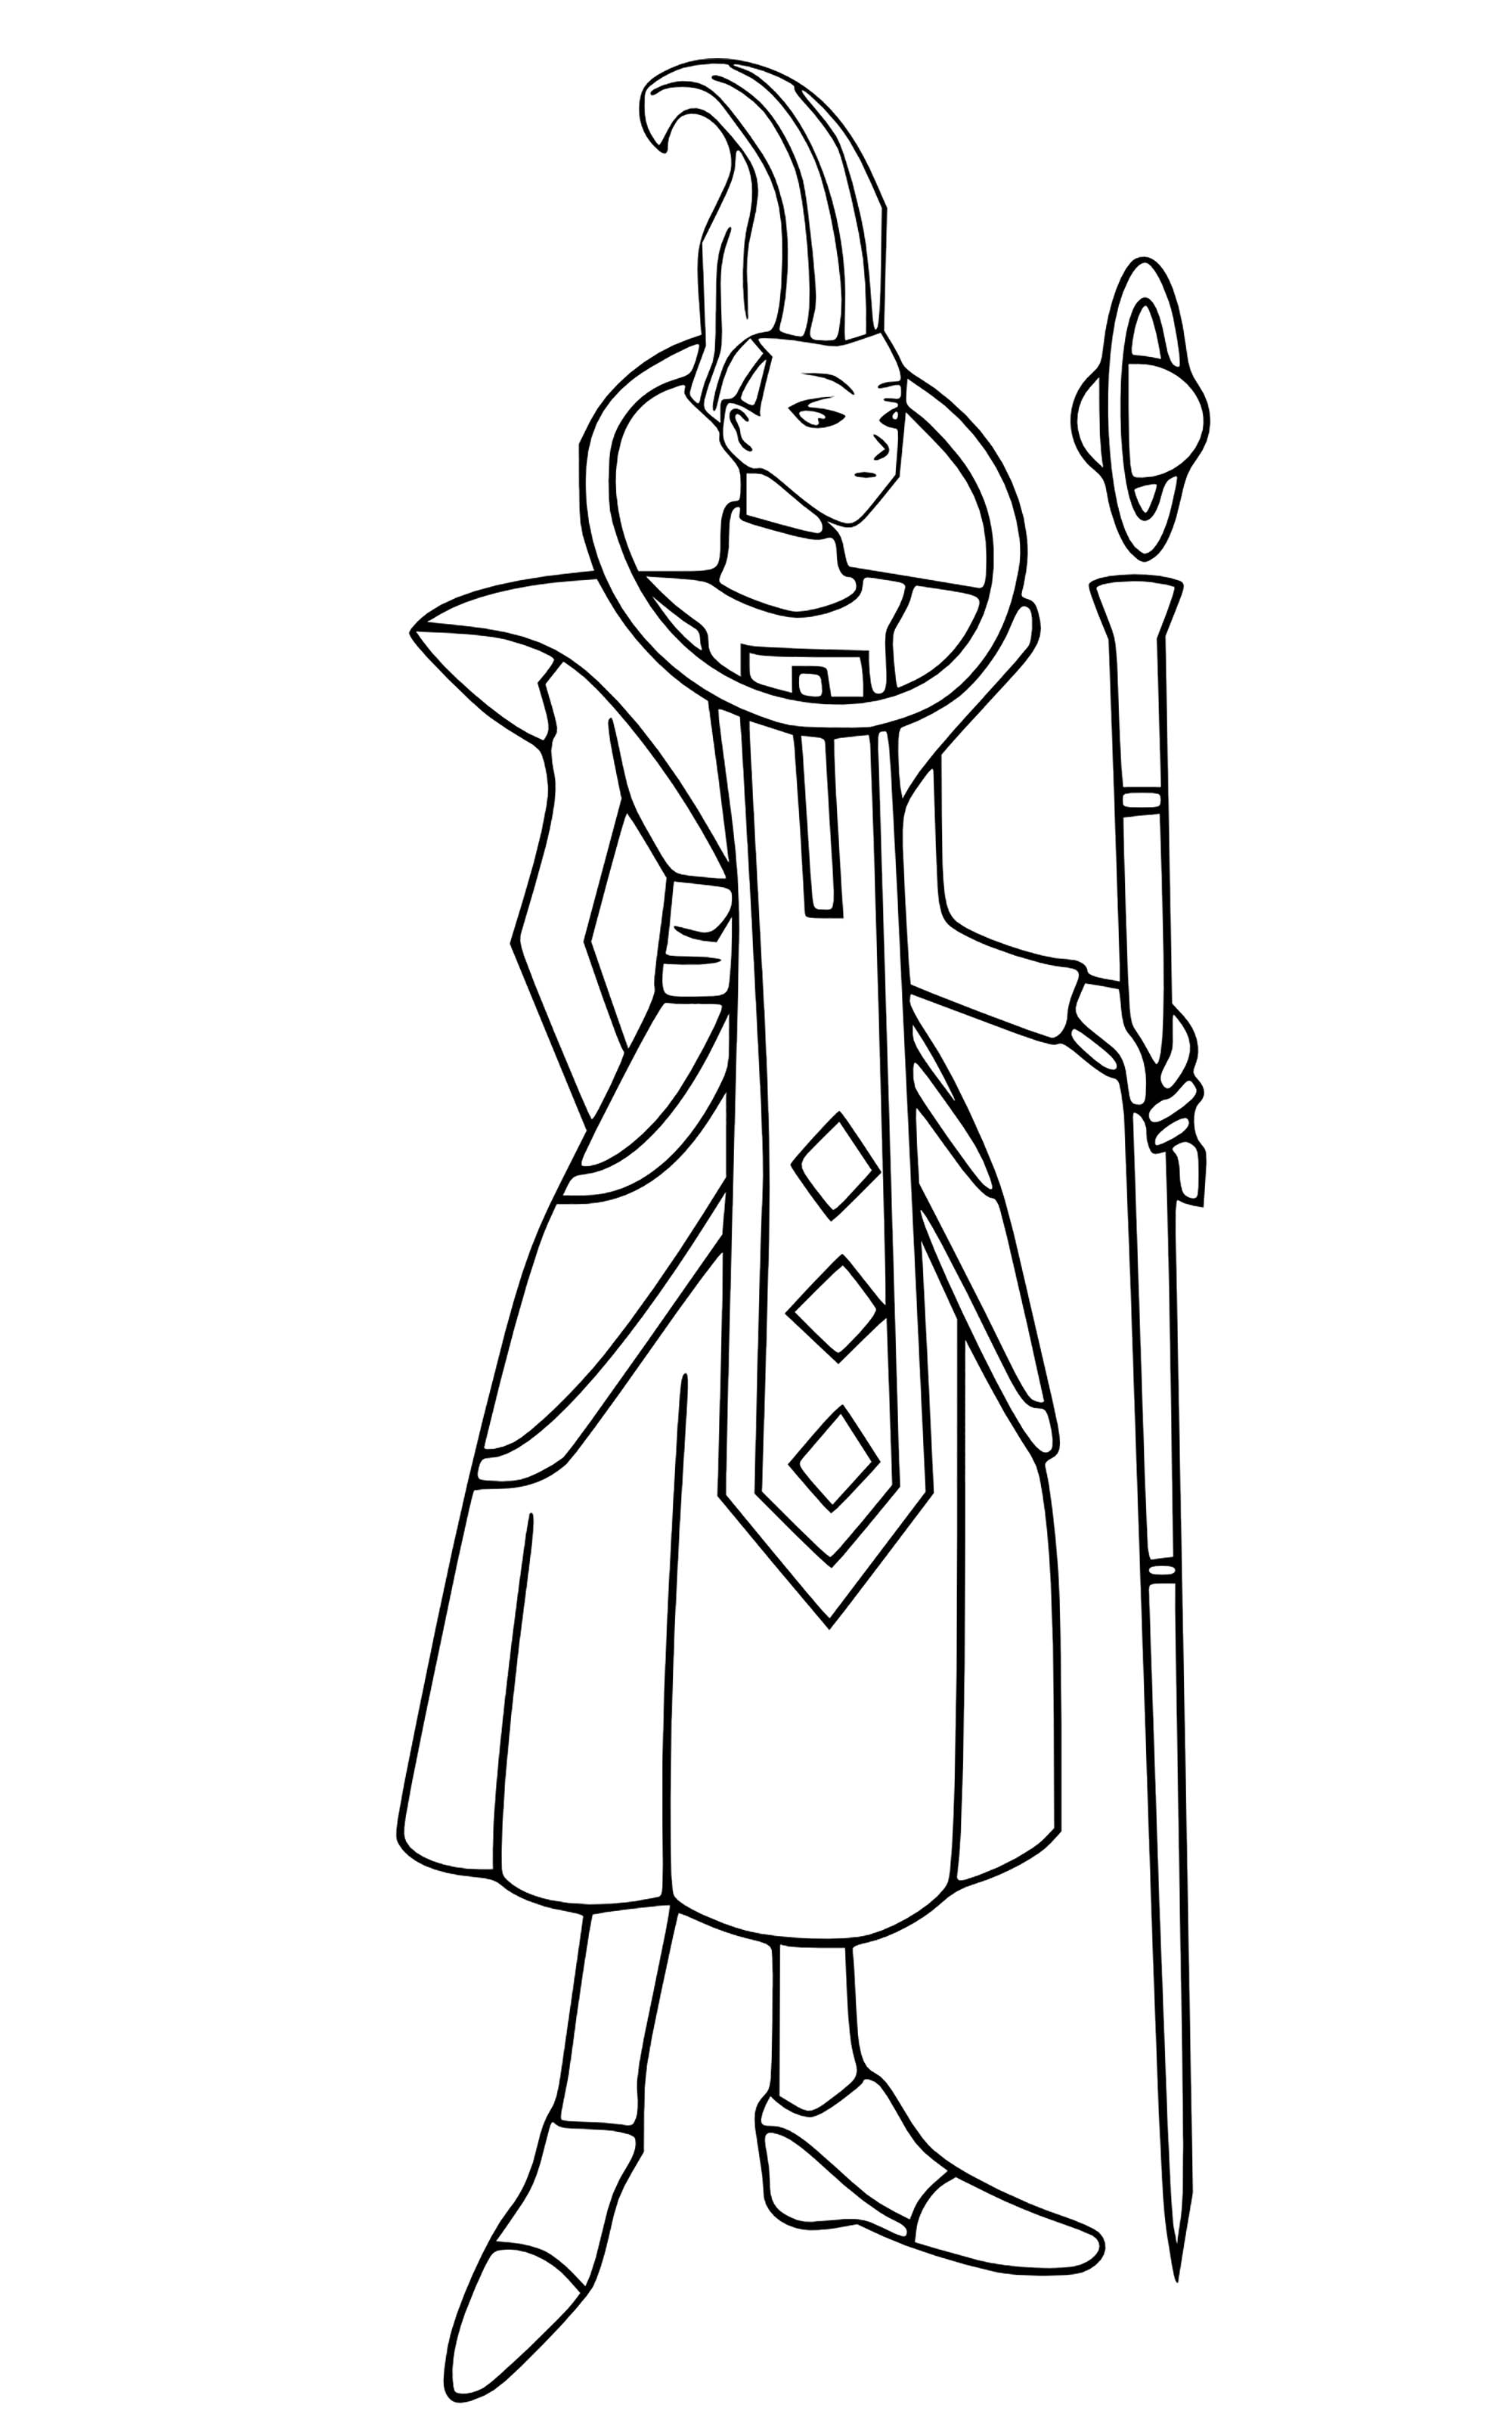 Whis Dragon Ball Z Kids Coloring Pages